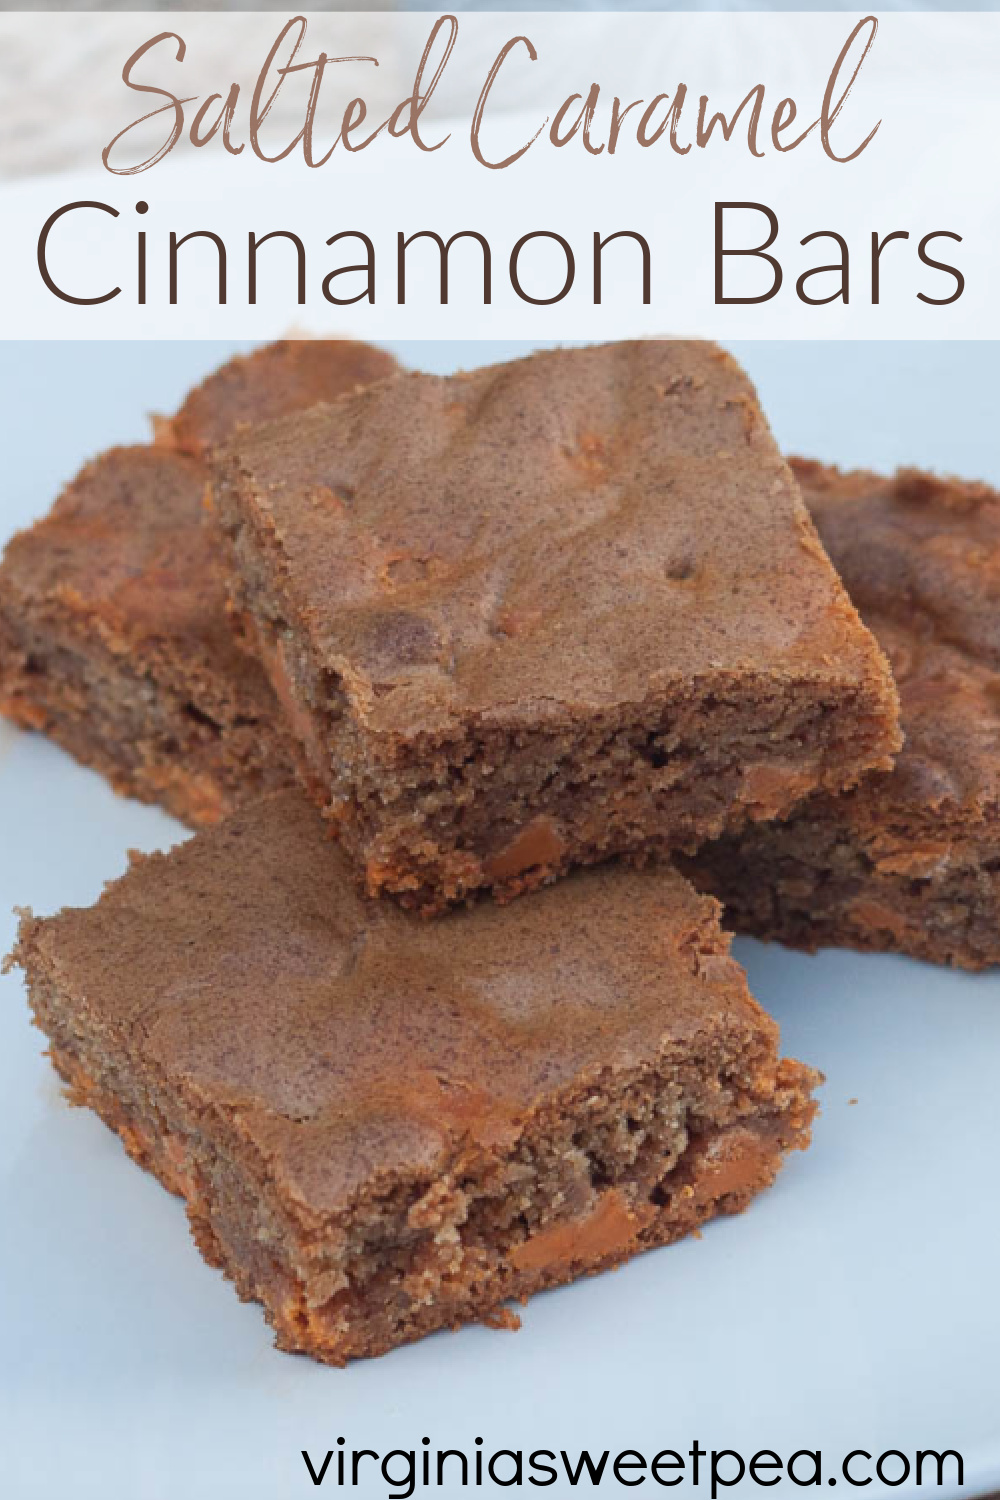 Salted Caramel Cinnamon Bars - Cinnamon infused batter is made extra tasty with the addition of Salted Caramel baking chips. This recipe is a real crowd pleaser! #cinnamonbars #barcookie #saltedcaramel via @spaula